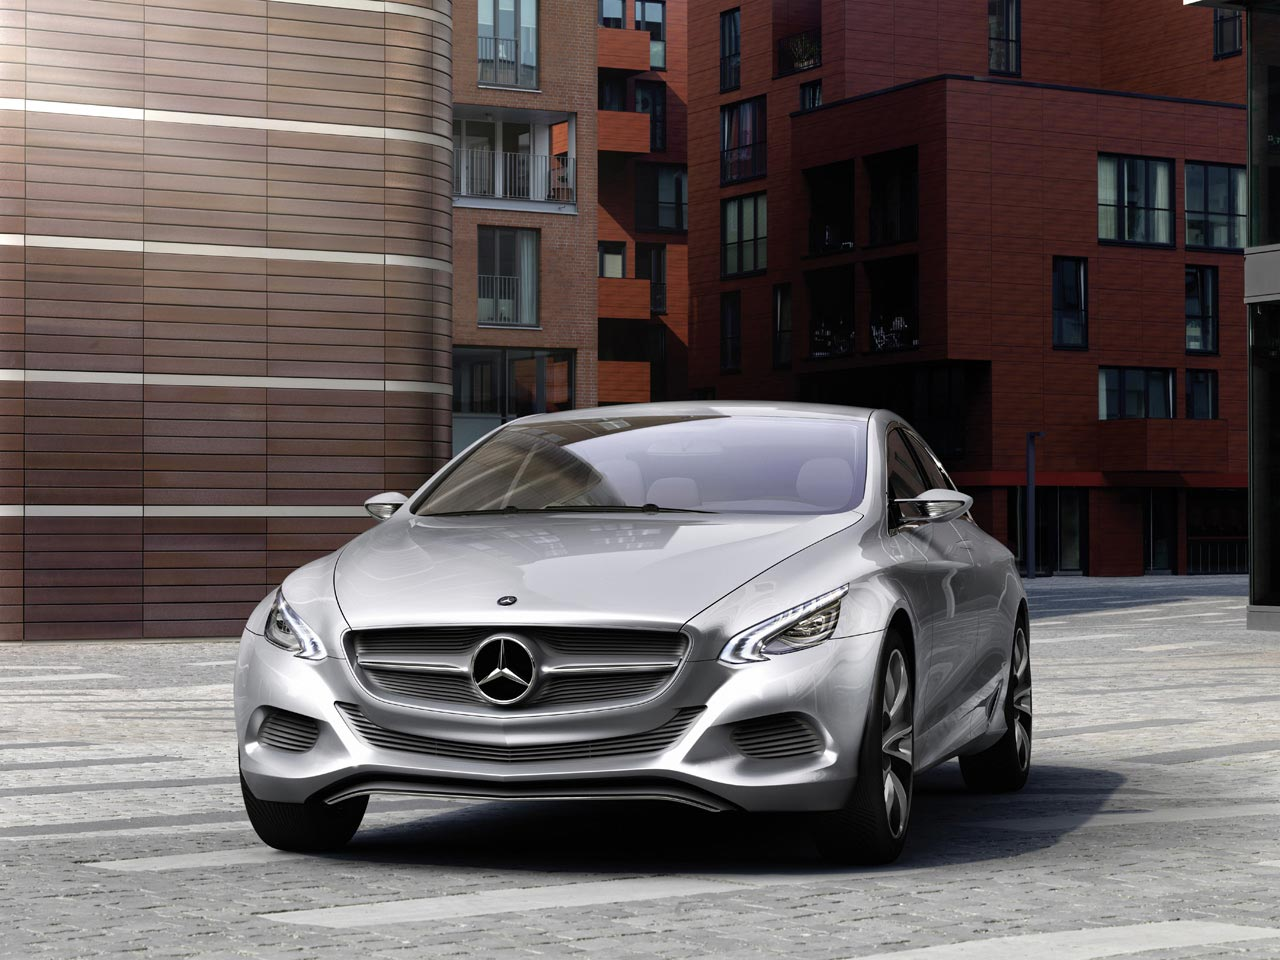 mercedes-f800-style-concept-car-1